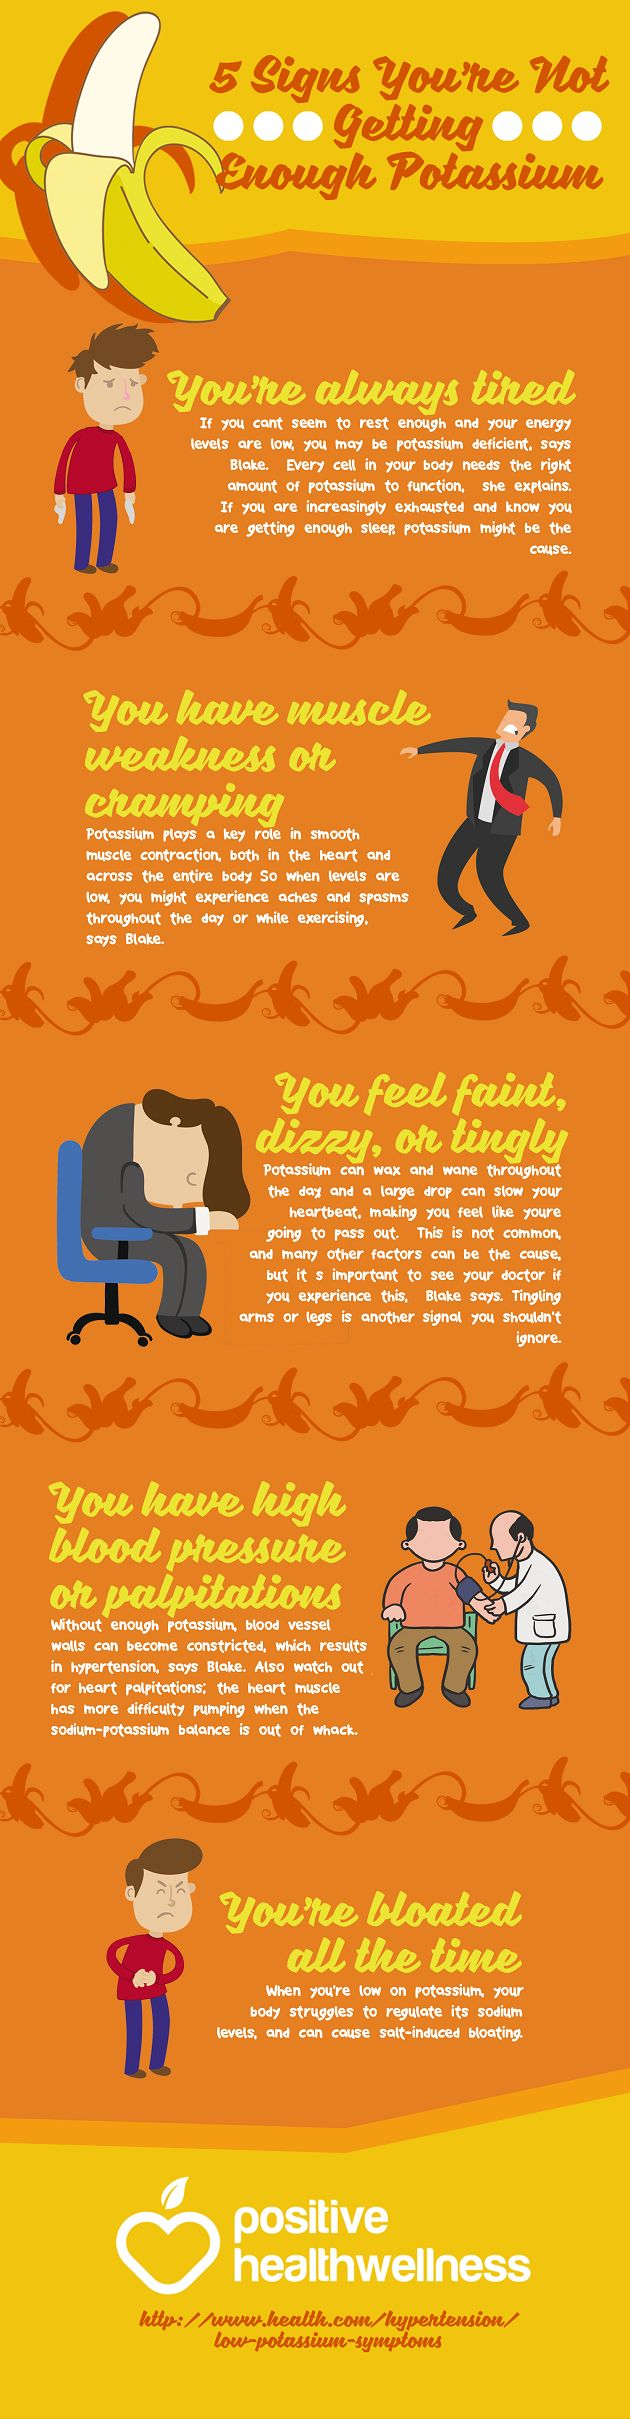 5 Signs You're Not Getting Enough Potassium – Positive Health Wellness Infographic